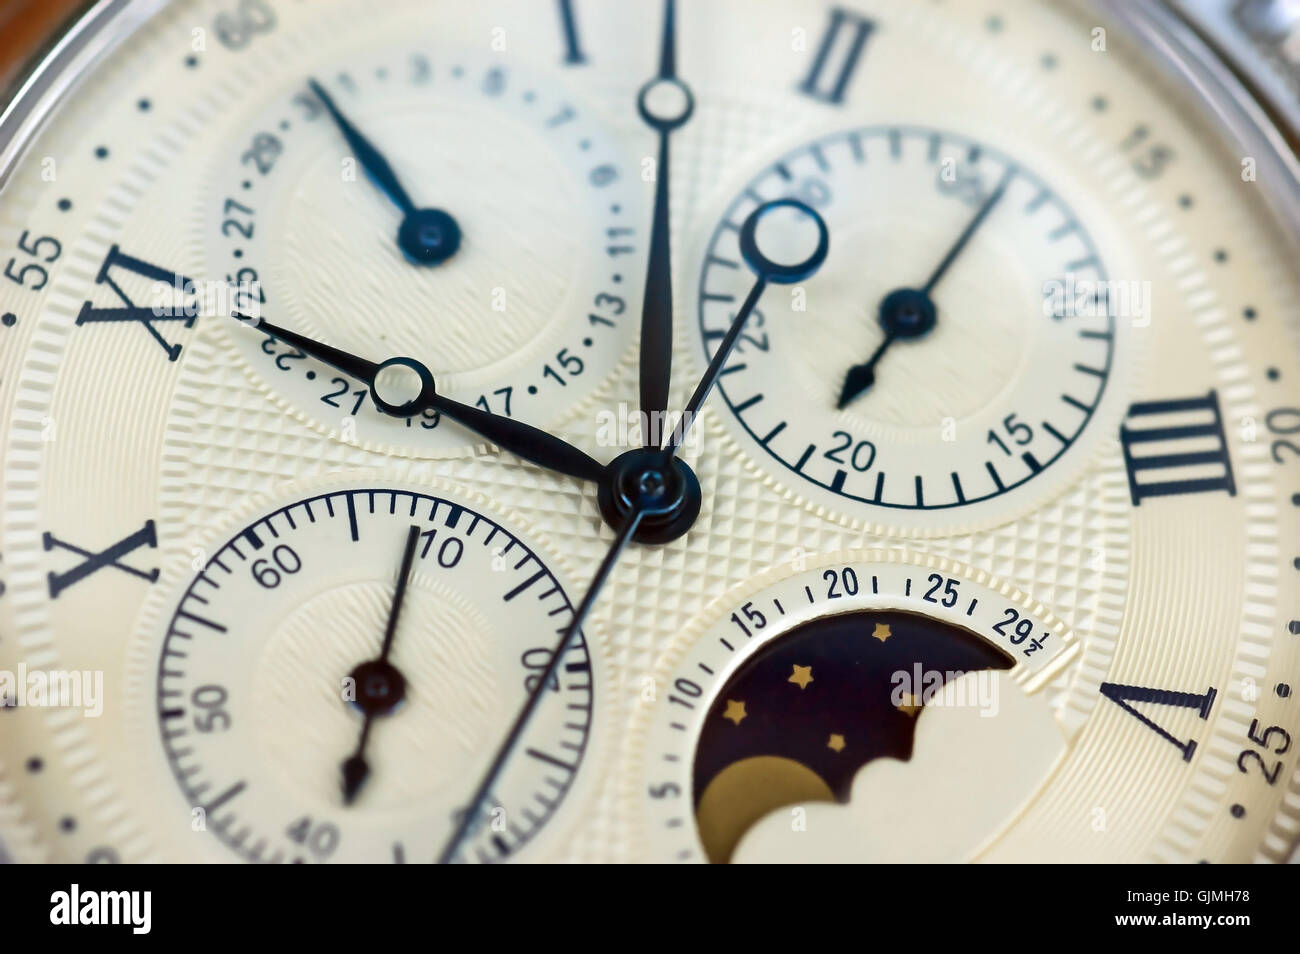 face clock vintage - Stock Image